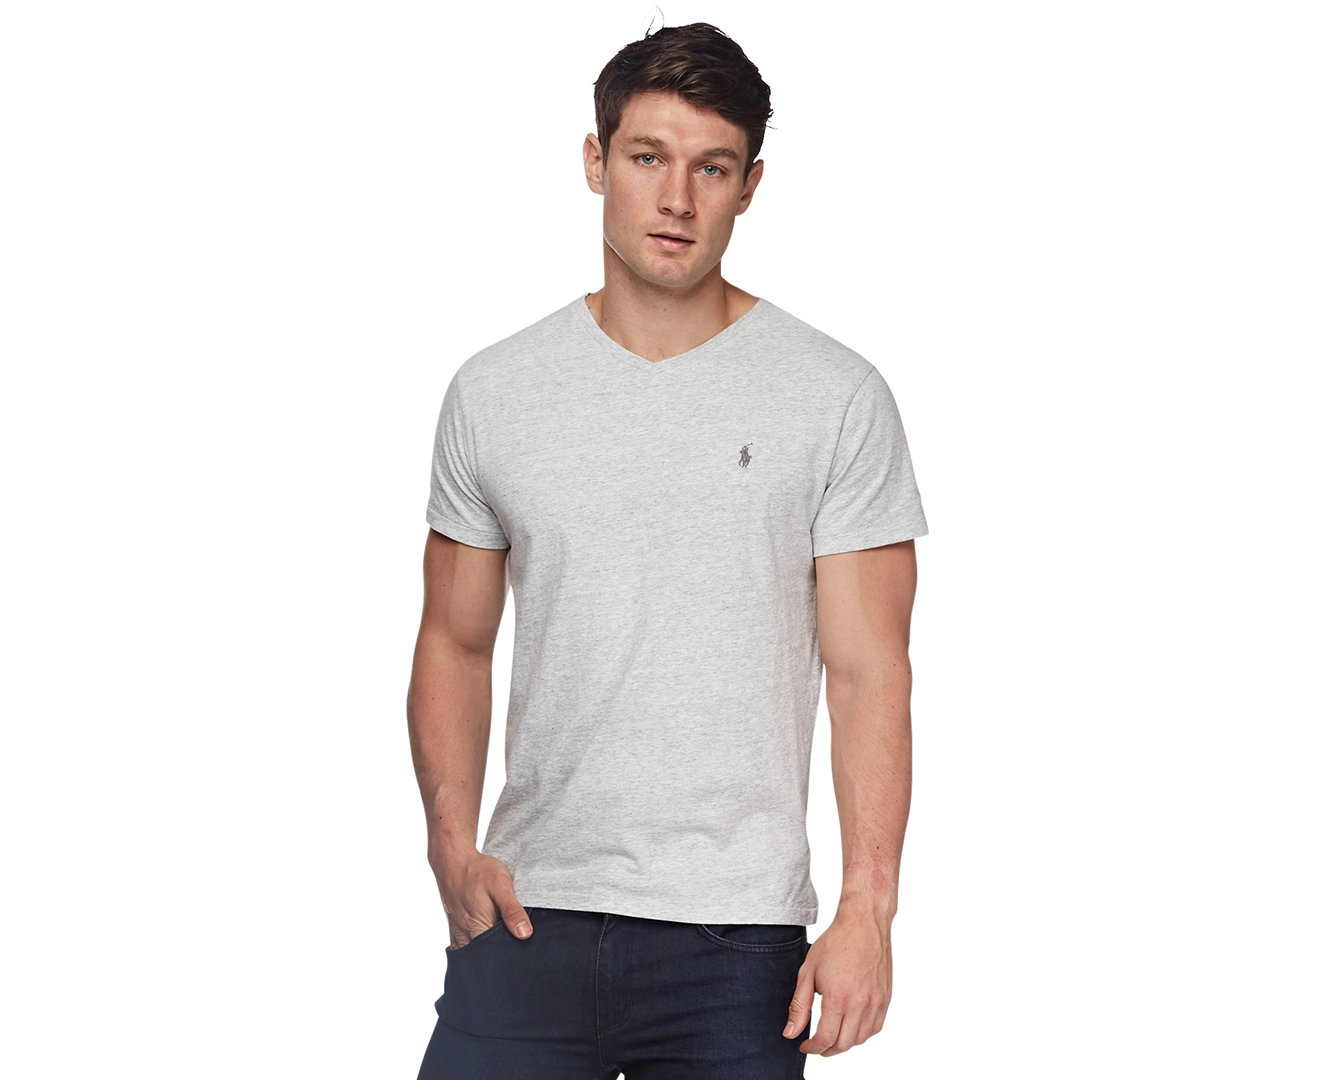 Polo Ralph Lauren Men's Classic Fit V-Neck T-Shirt (Lawrence Grey, Small)